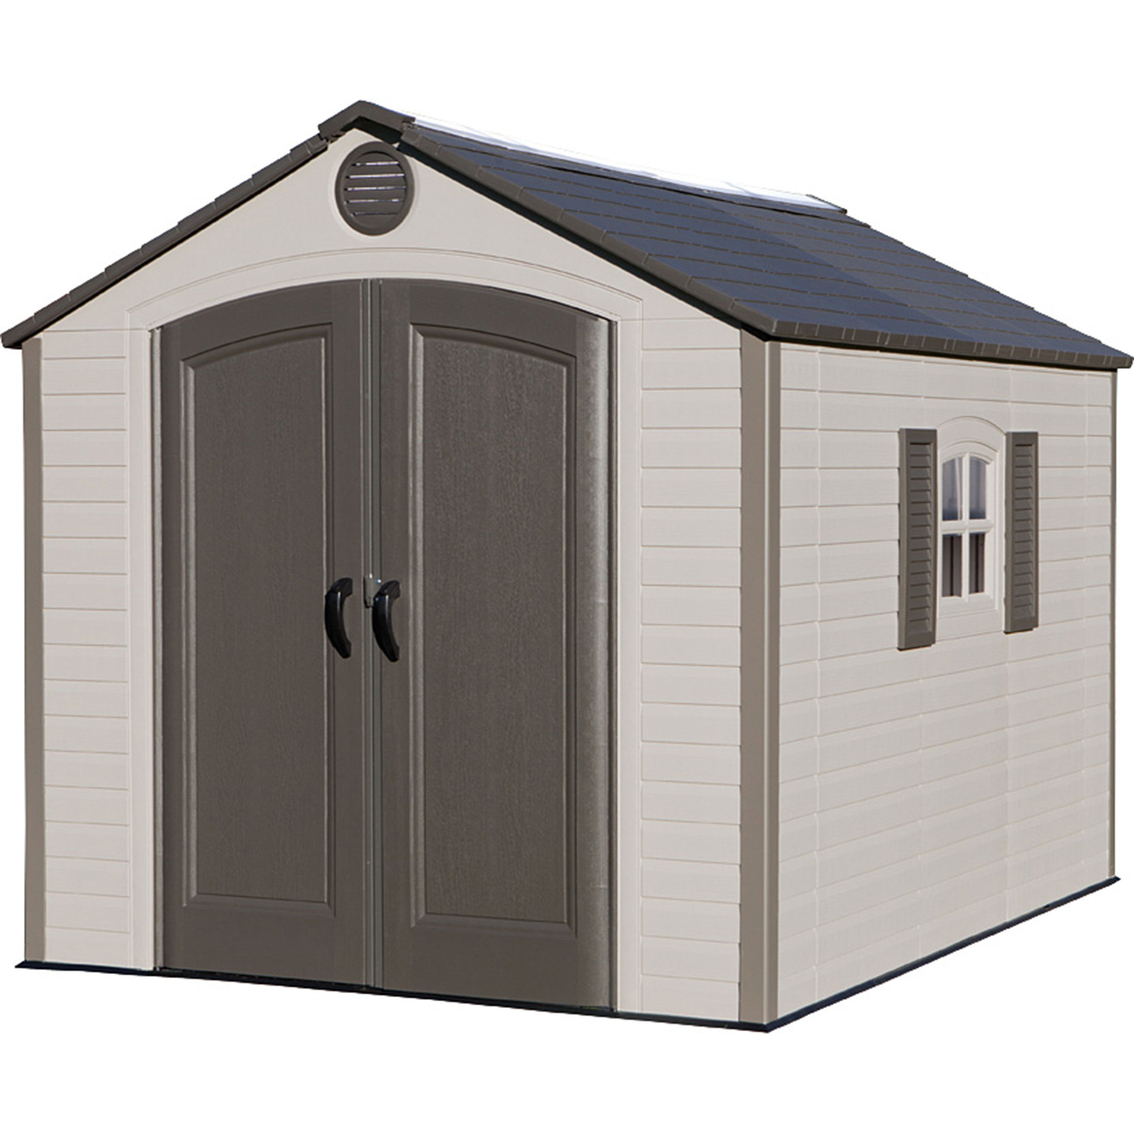 Rubbermaid Storage Sheds | Rubbermaid Shed | Lowes Rubbermaid Storage Shed